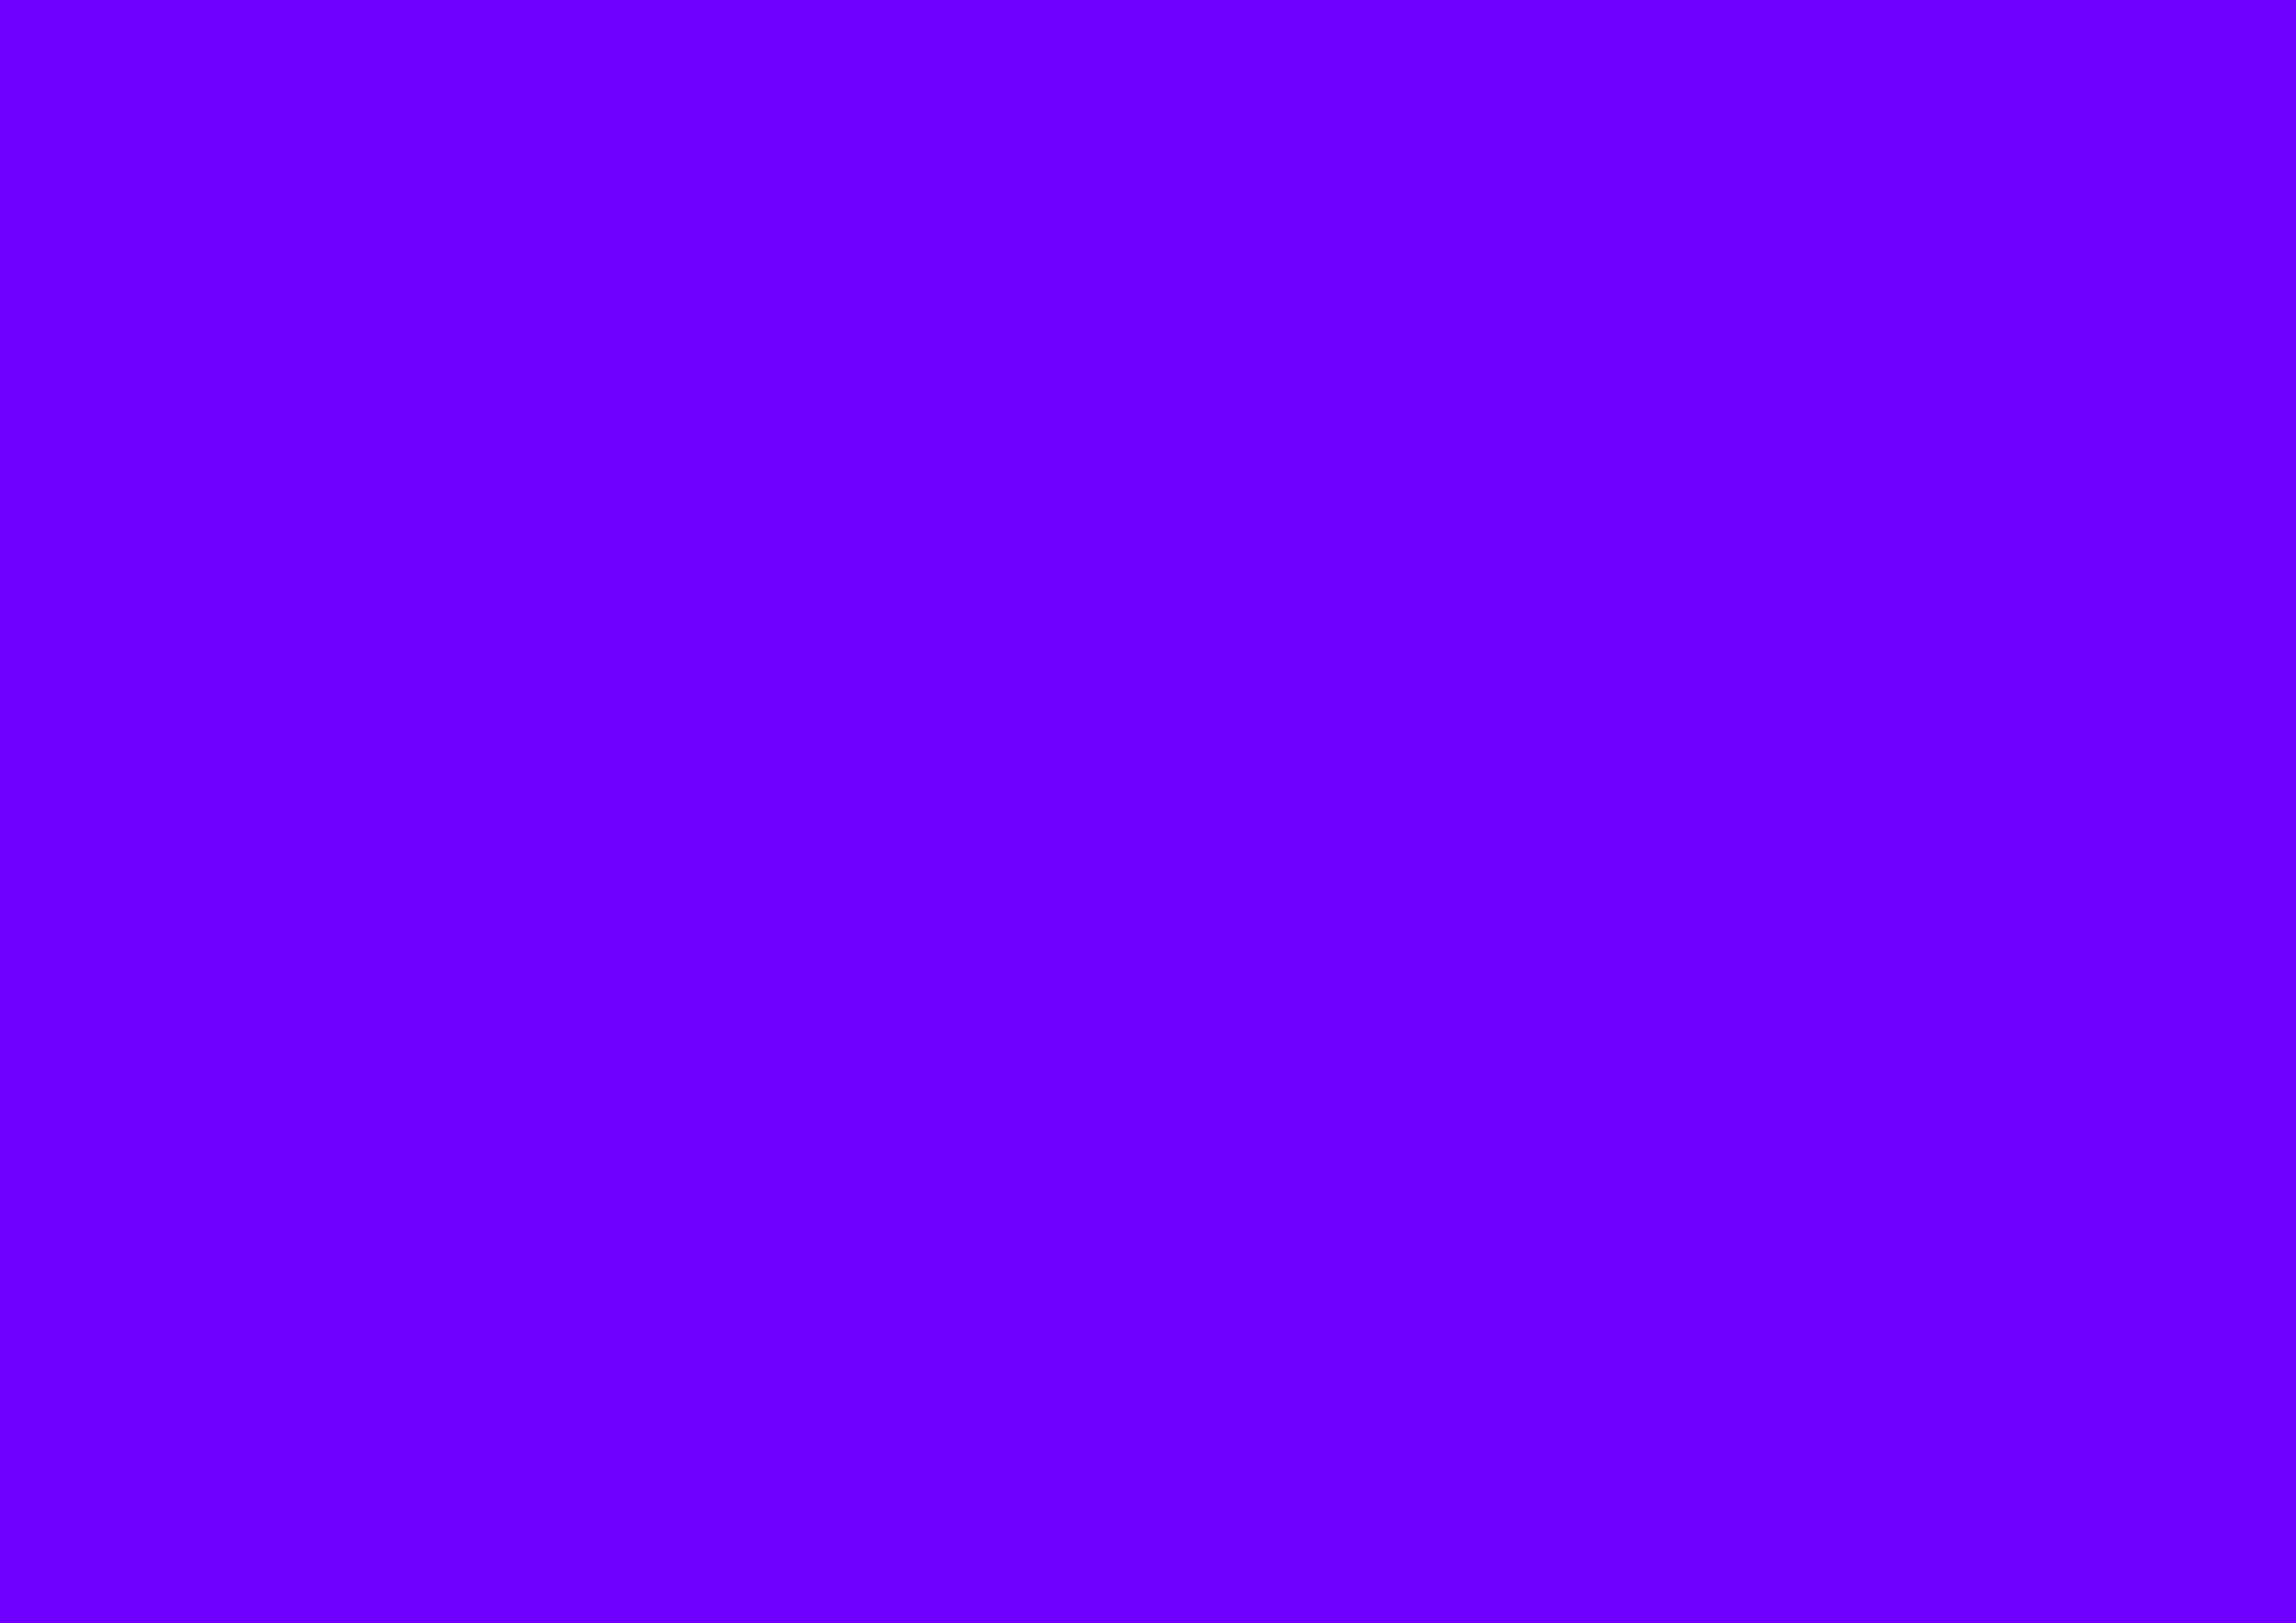 3508x2480 Electric Indigo Solid Color Background